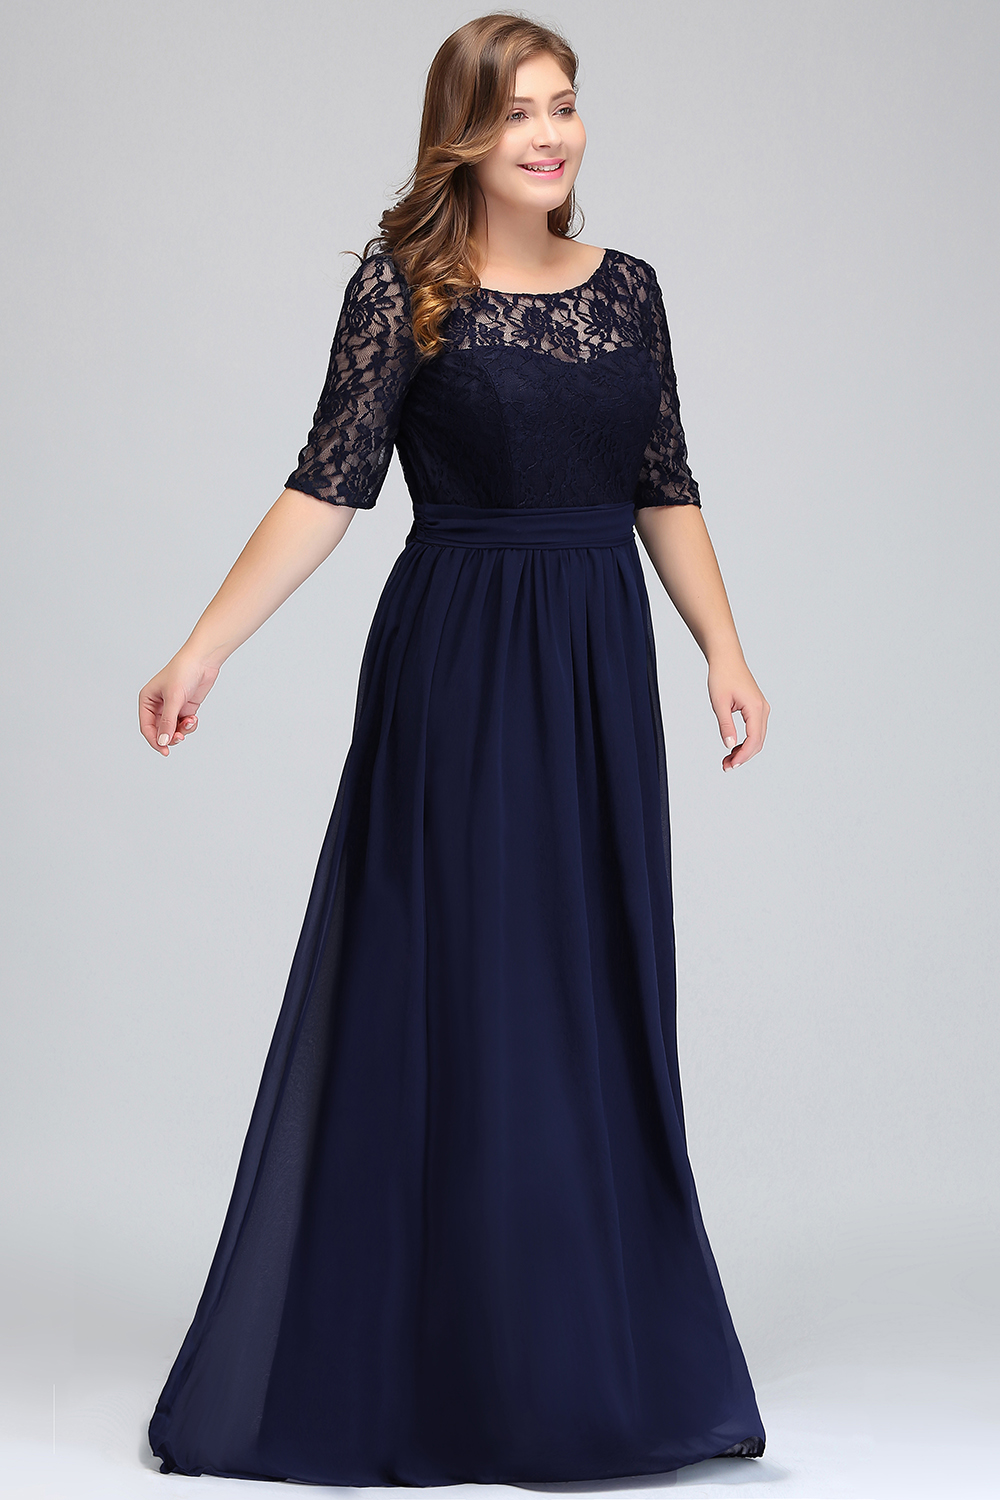 US $35.99 25% OFF|2019 Long Cheap Bridesmaid Dresses Under 50$ Floor Length  Lace Plus Size Bridesmaid Dress Vestido De Madrinha De Casamento Longo-in  ...